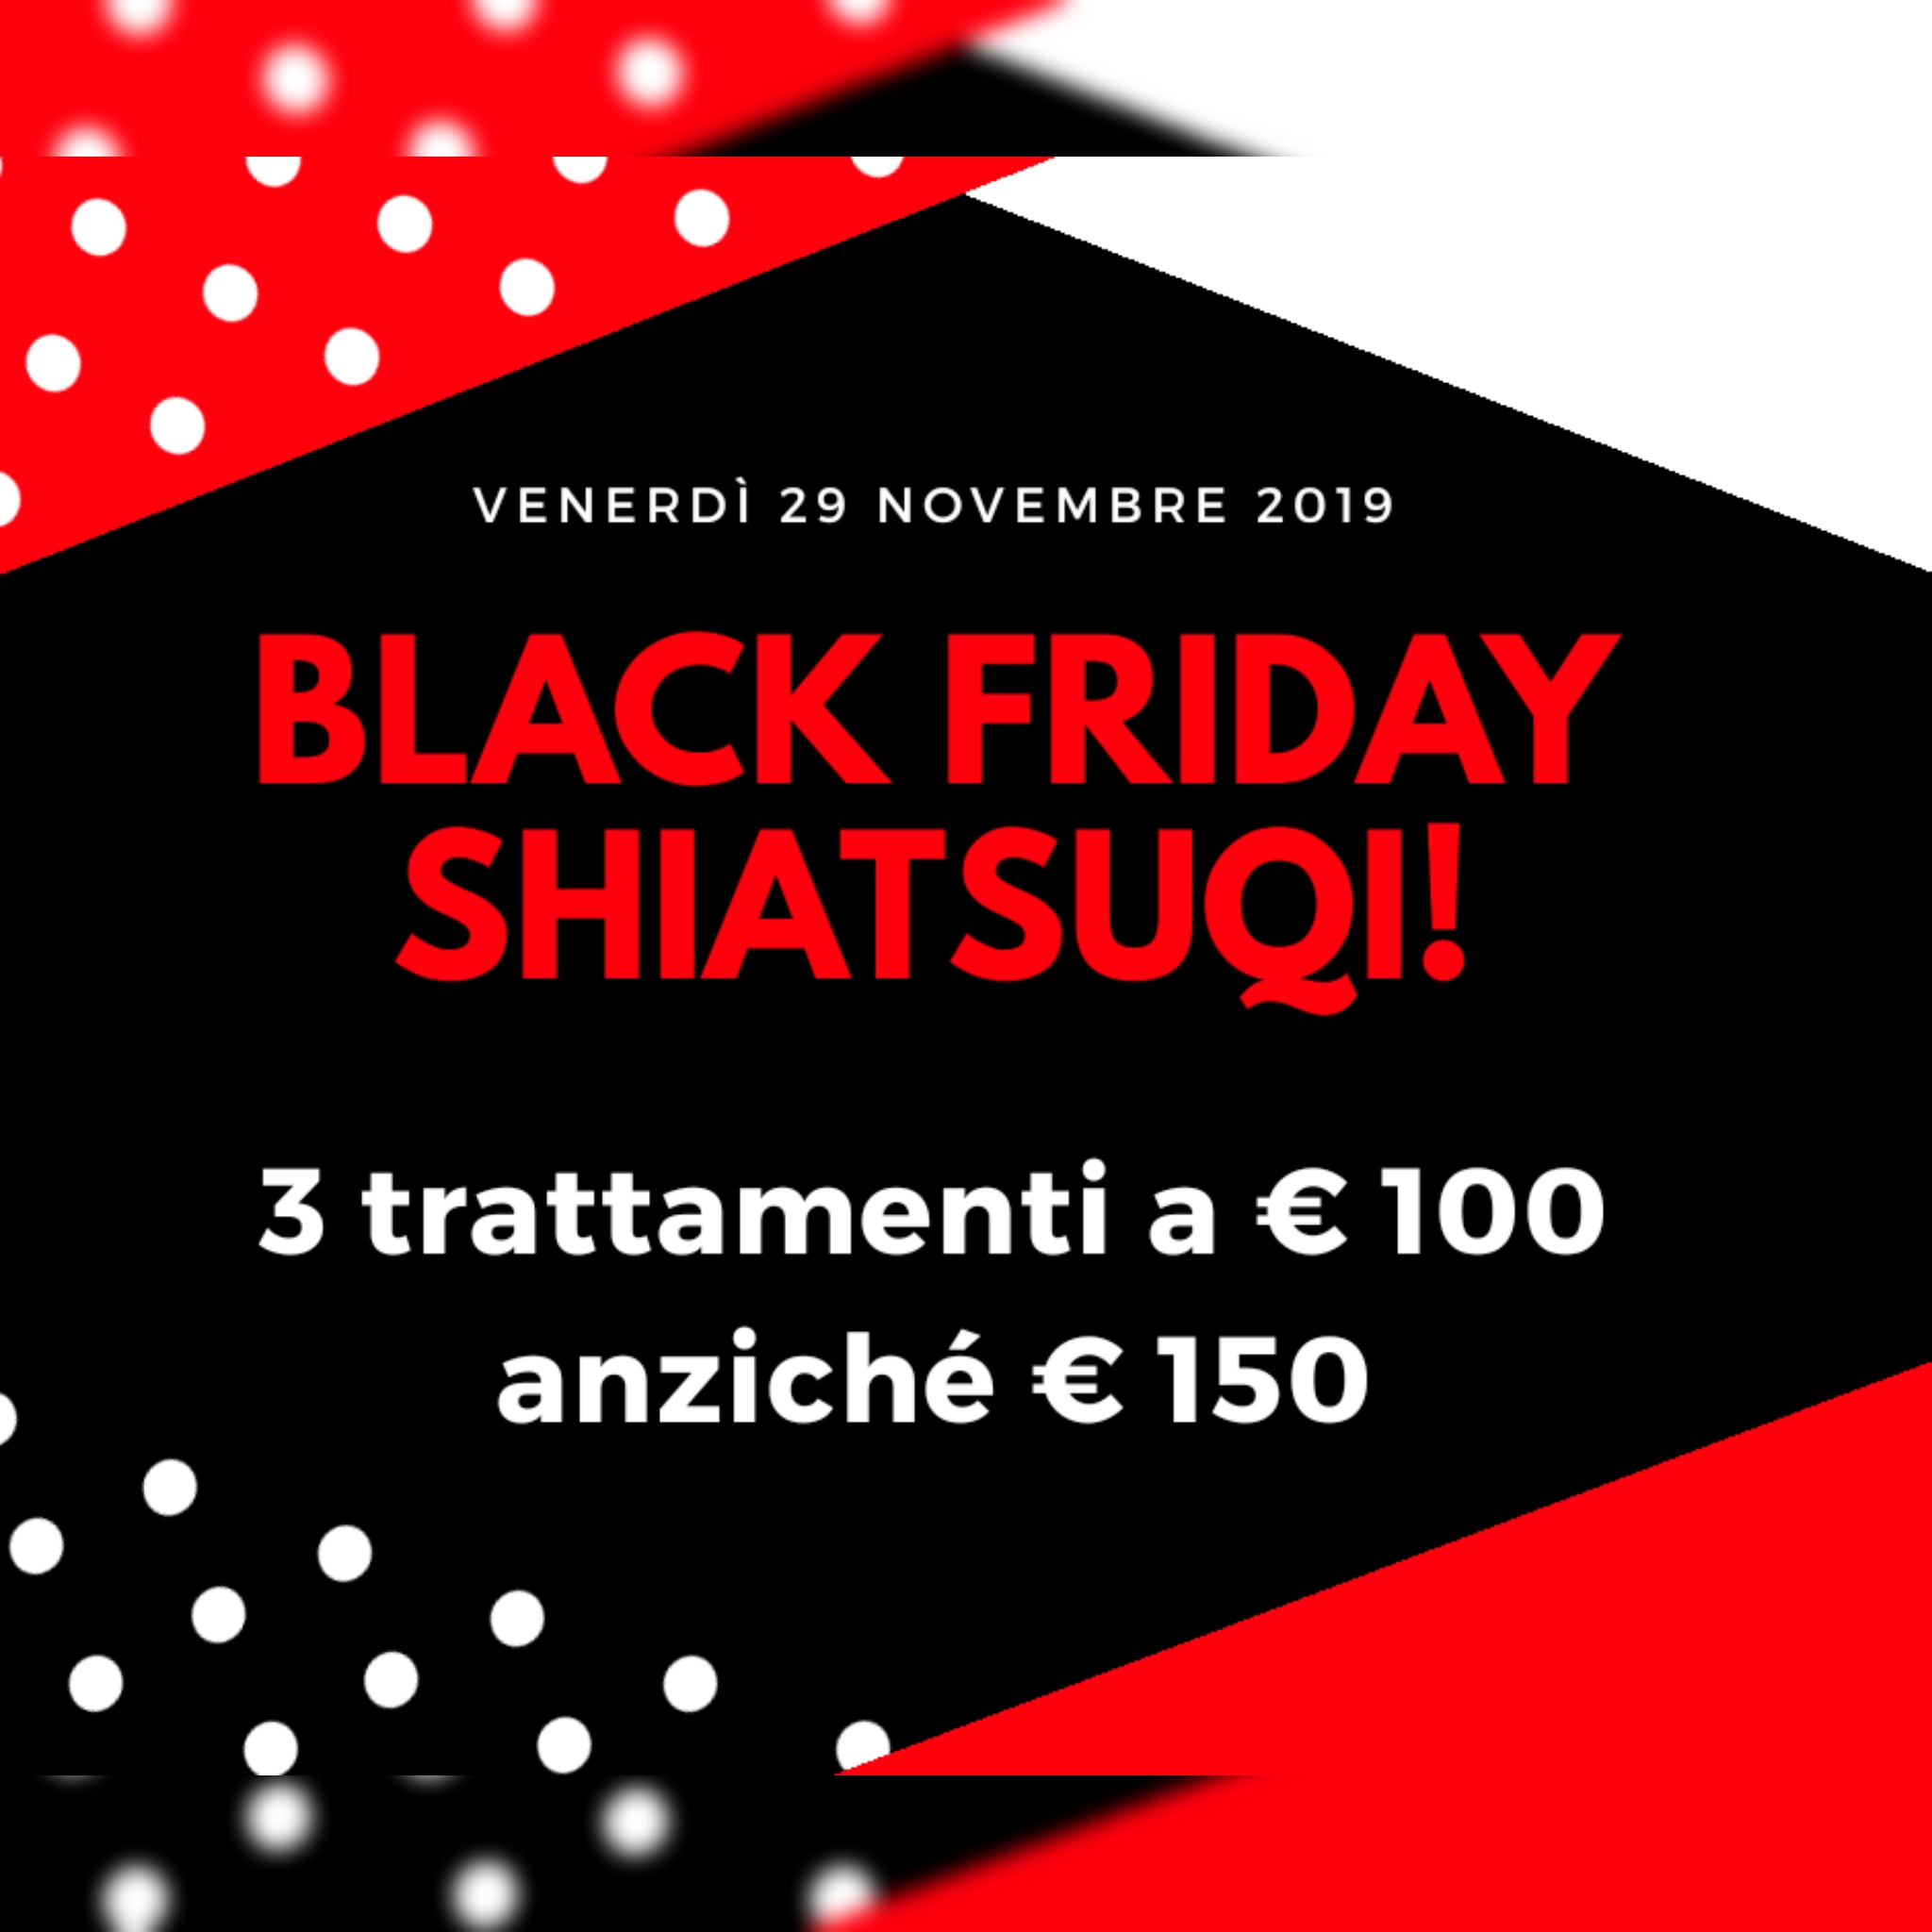 Promo black friday 29 11 2019